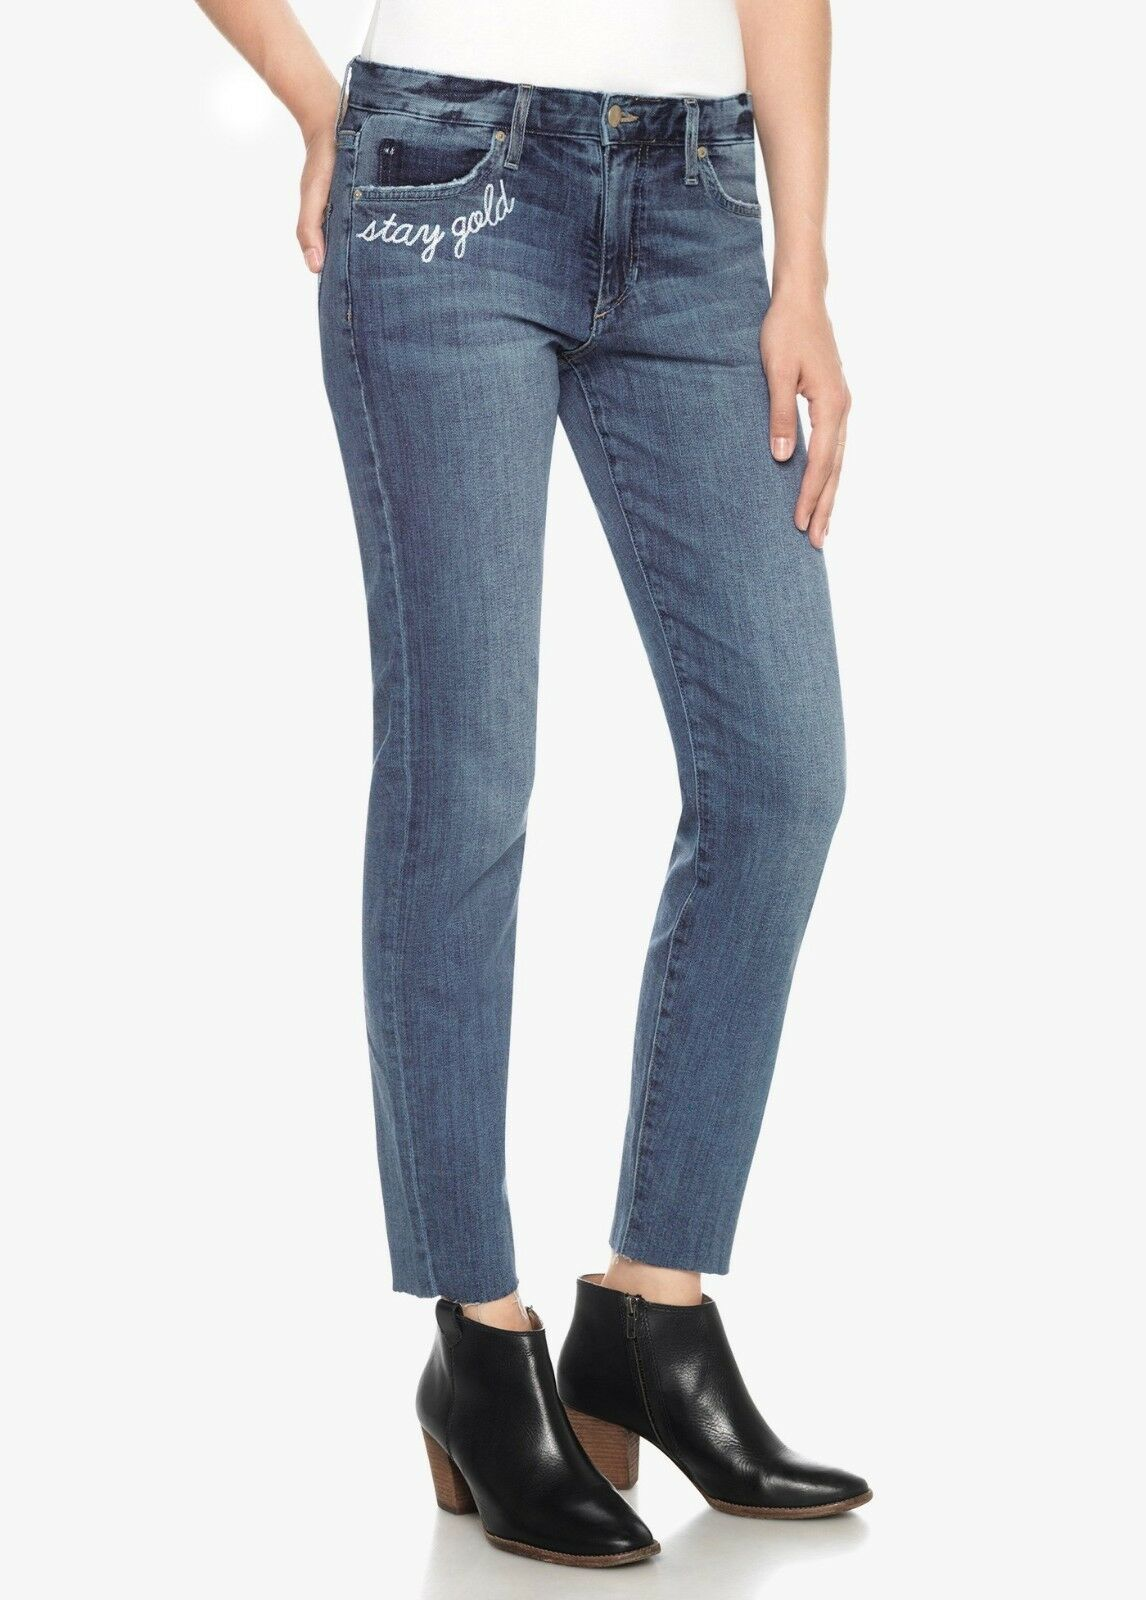 Joe's Jeans The Smith Mid-Rise Straight Crop Denim Pant Clenna 25 26 28 29 30 31